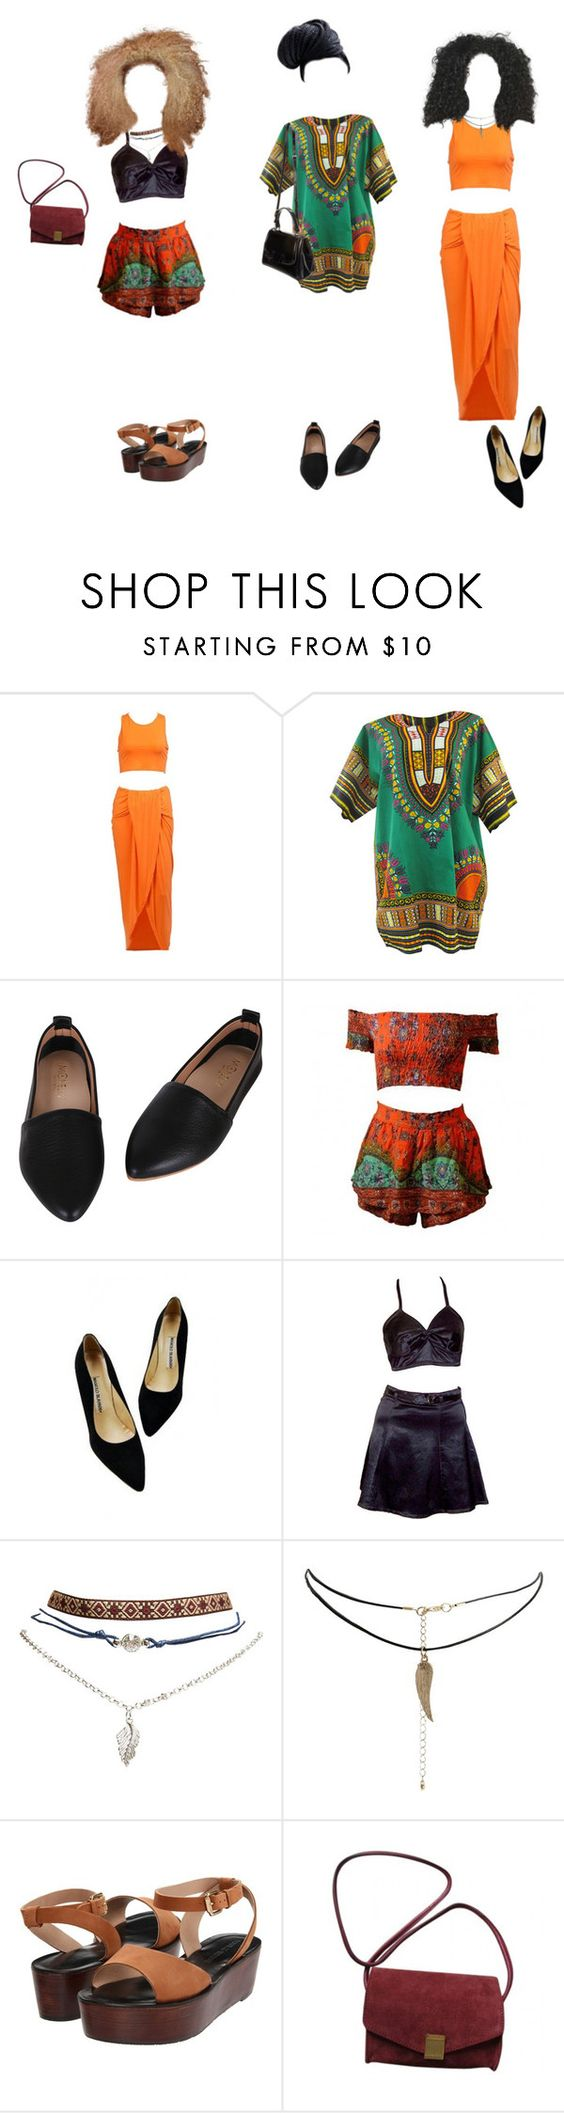 """""""Queens"""" by shelxmiel ❤ liked on Polyvore featuring Wet Seal, ASOS, Pour La Victoire, Fendi and Zadig & Voltaire"""